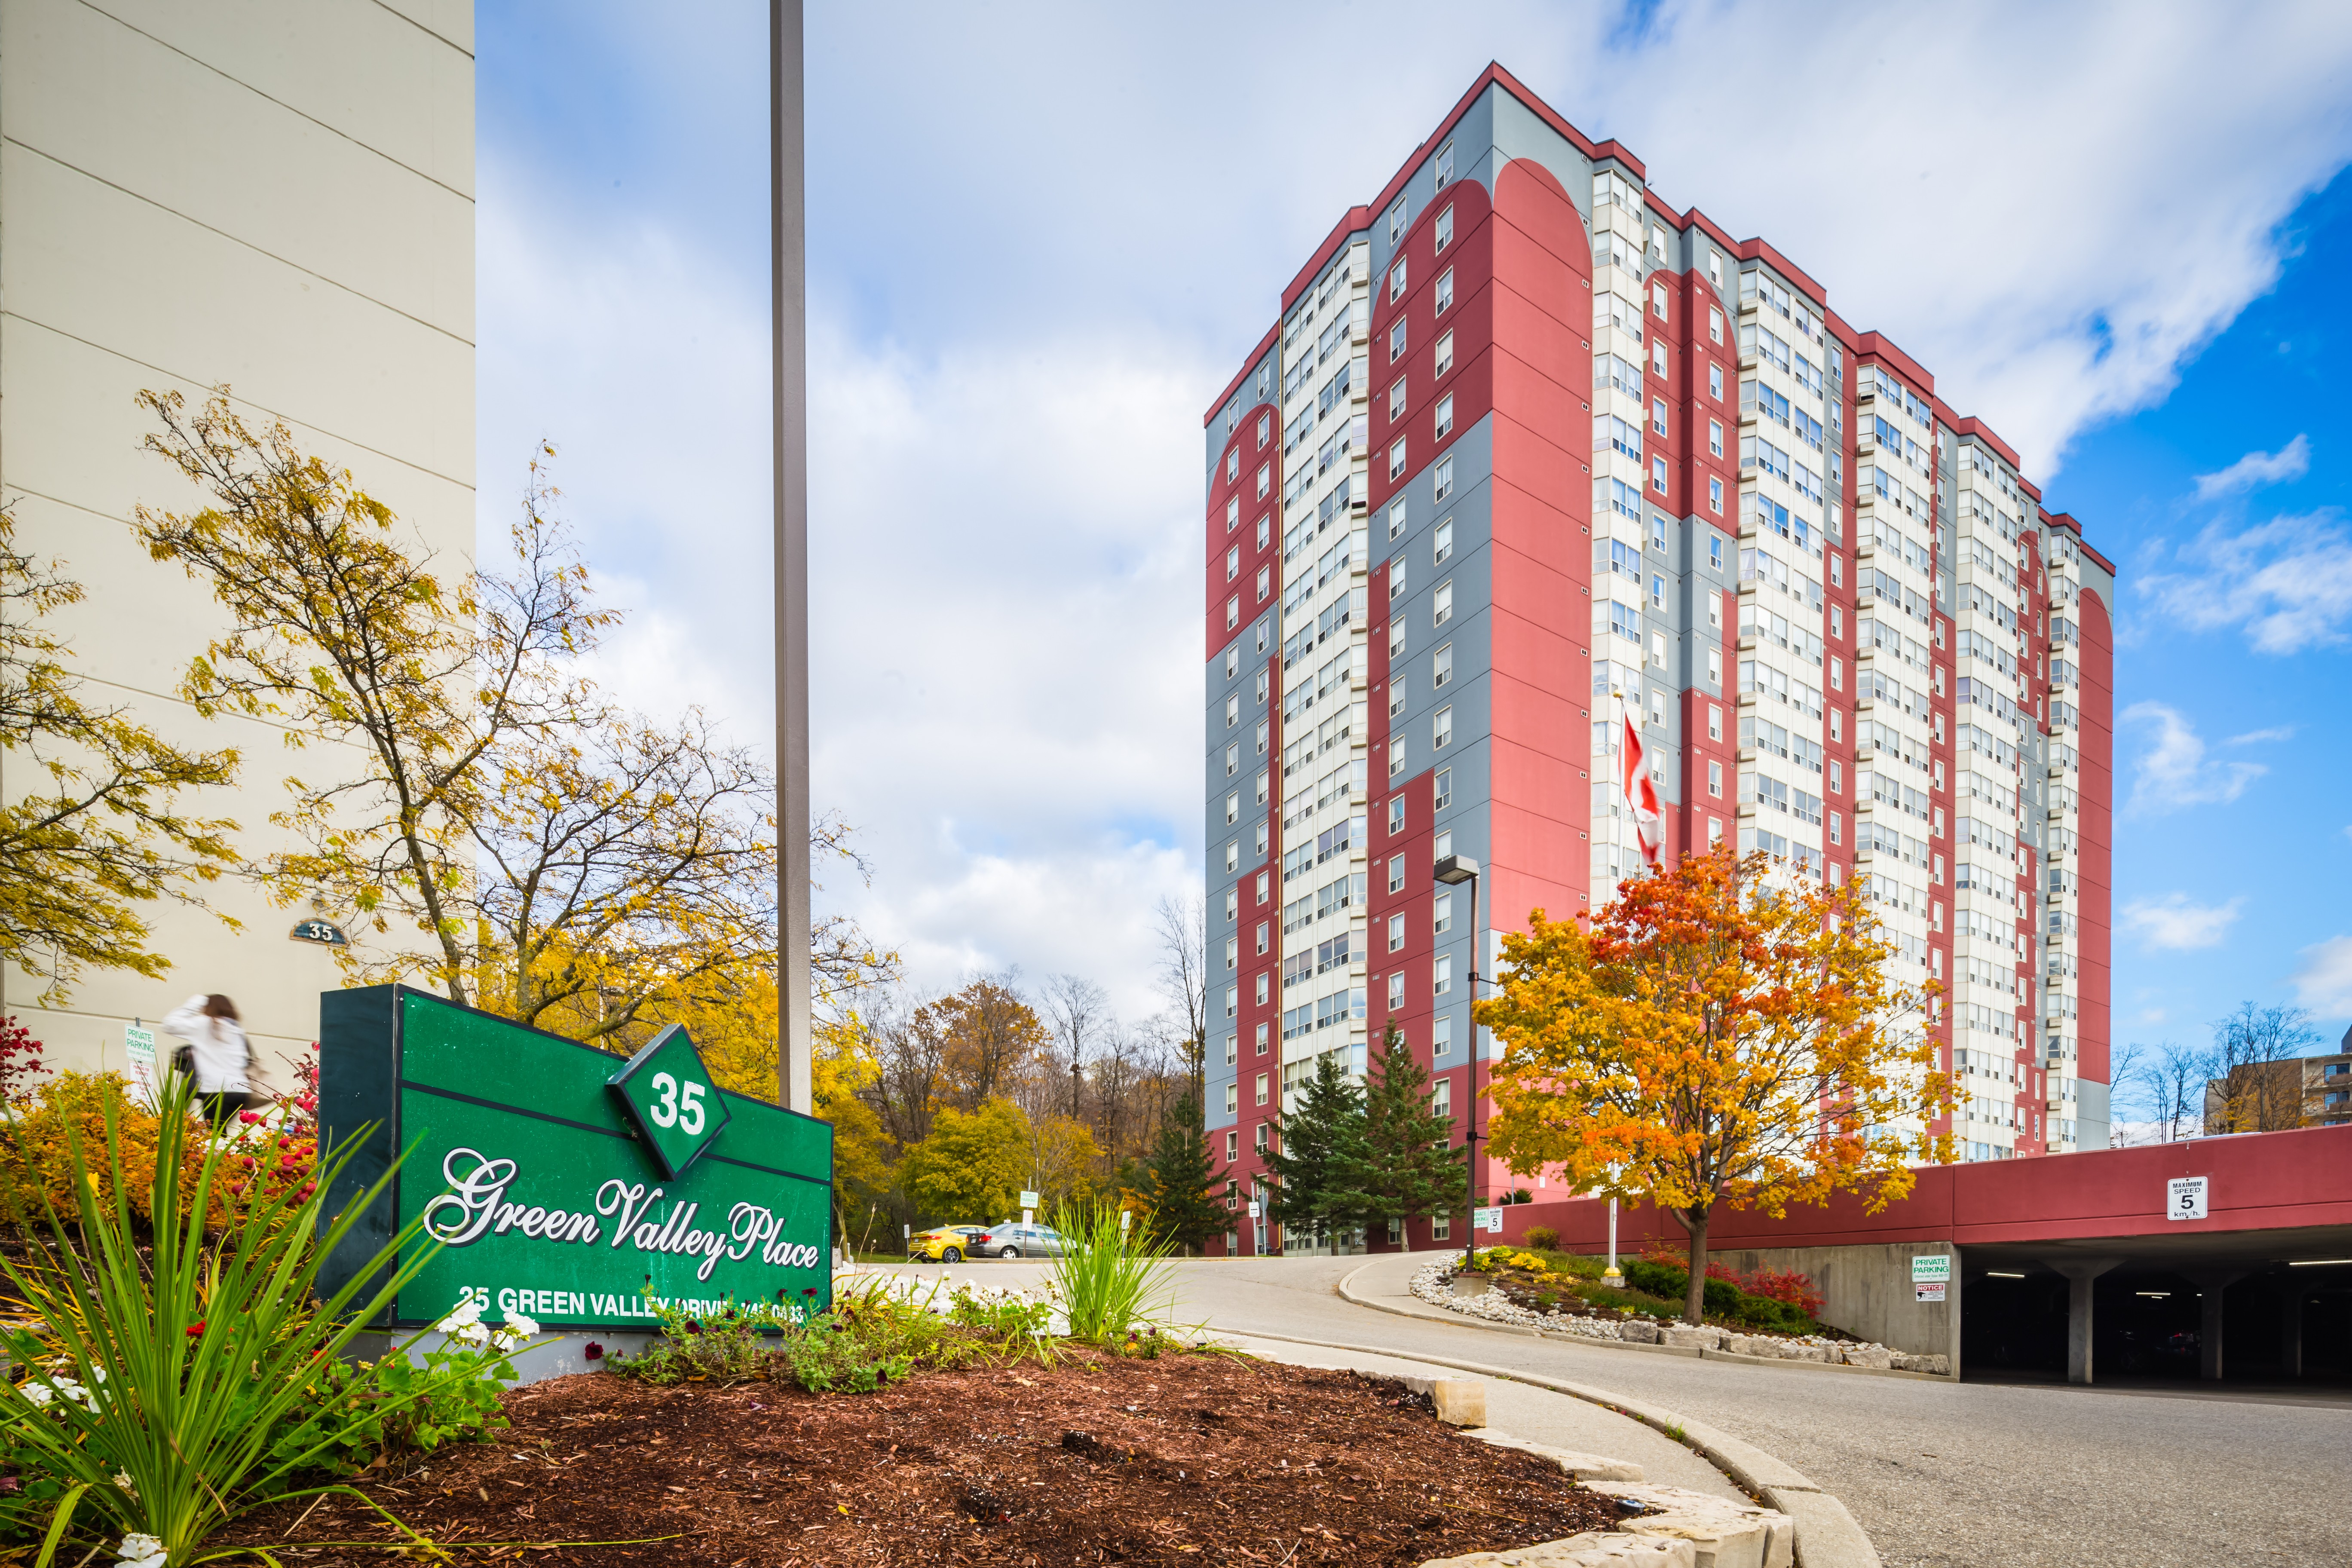 Green Valley Place at 35 Green Valley Dr, Kitchener 0